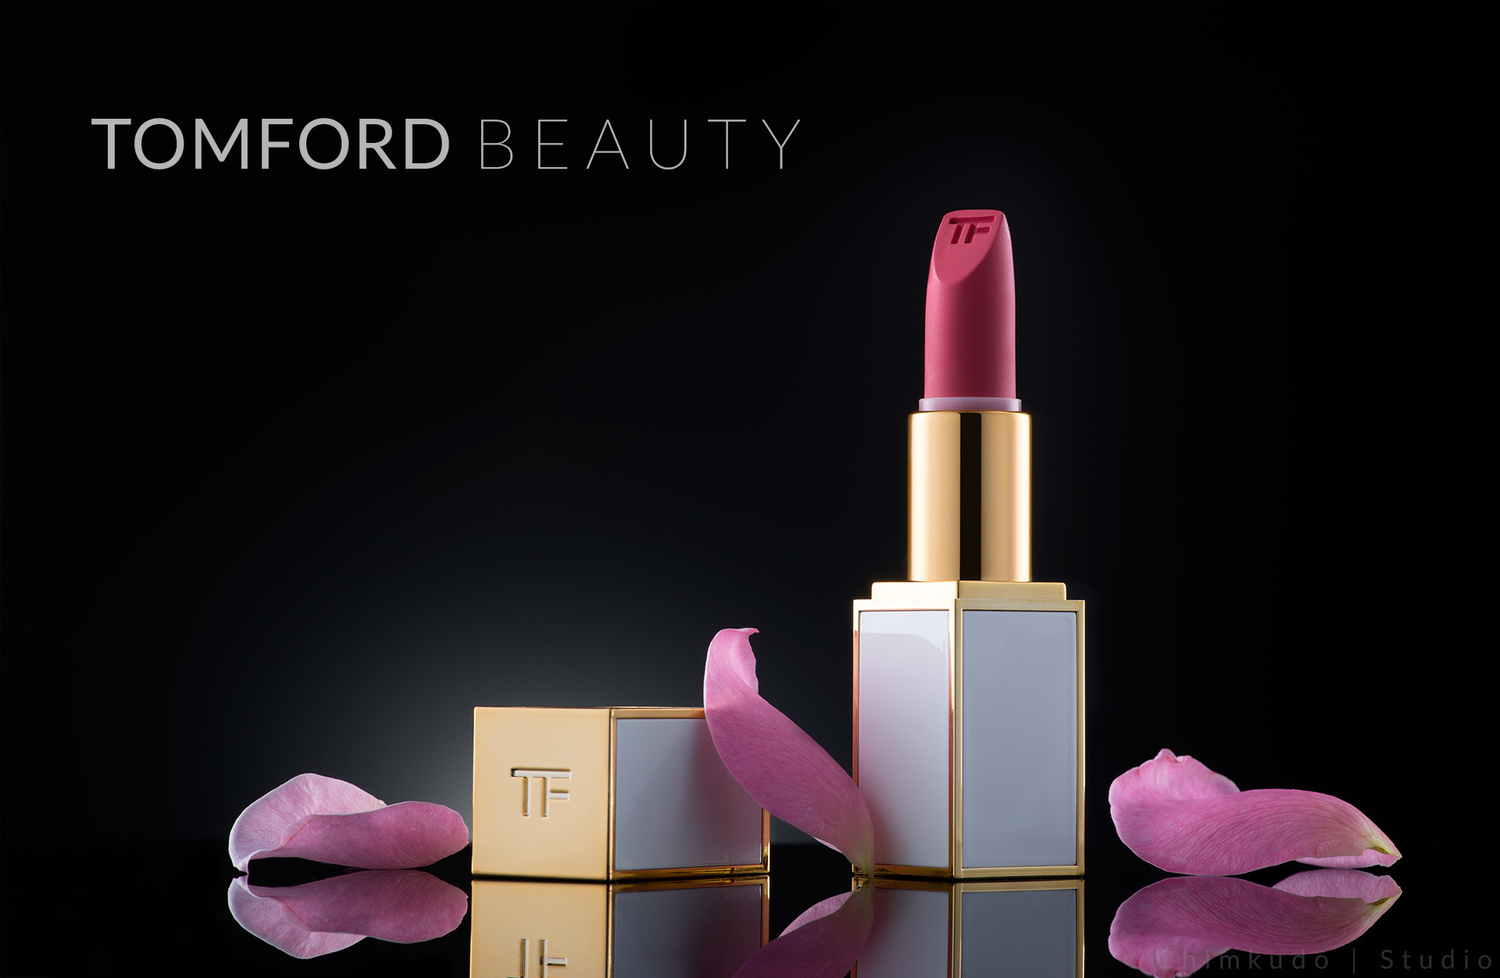 Tomford Beauty by Hung Nguyen